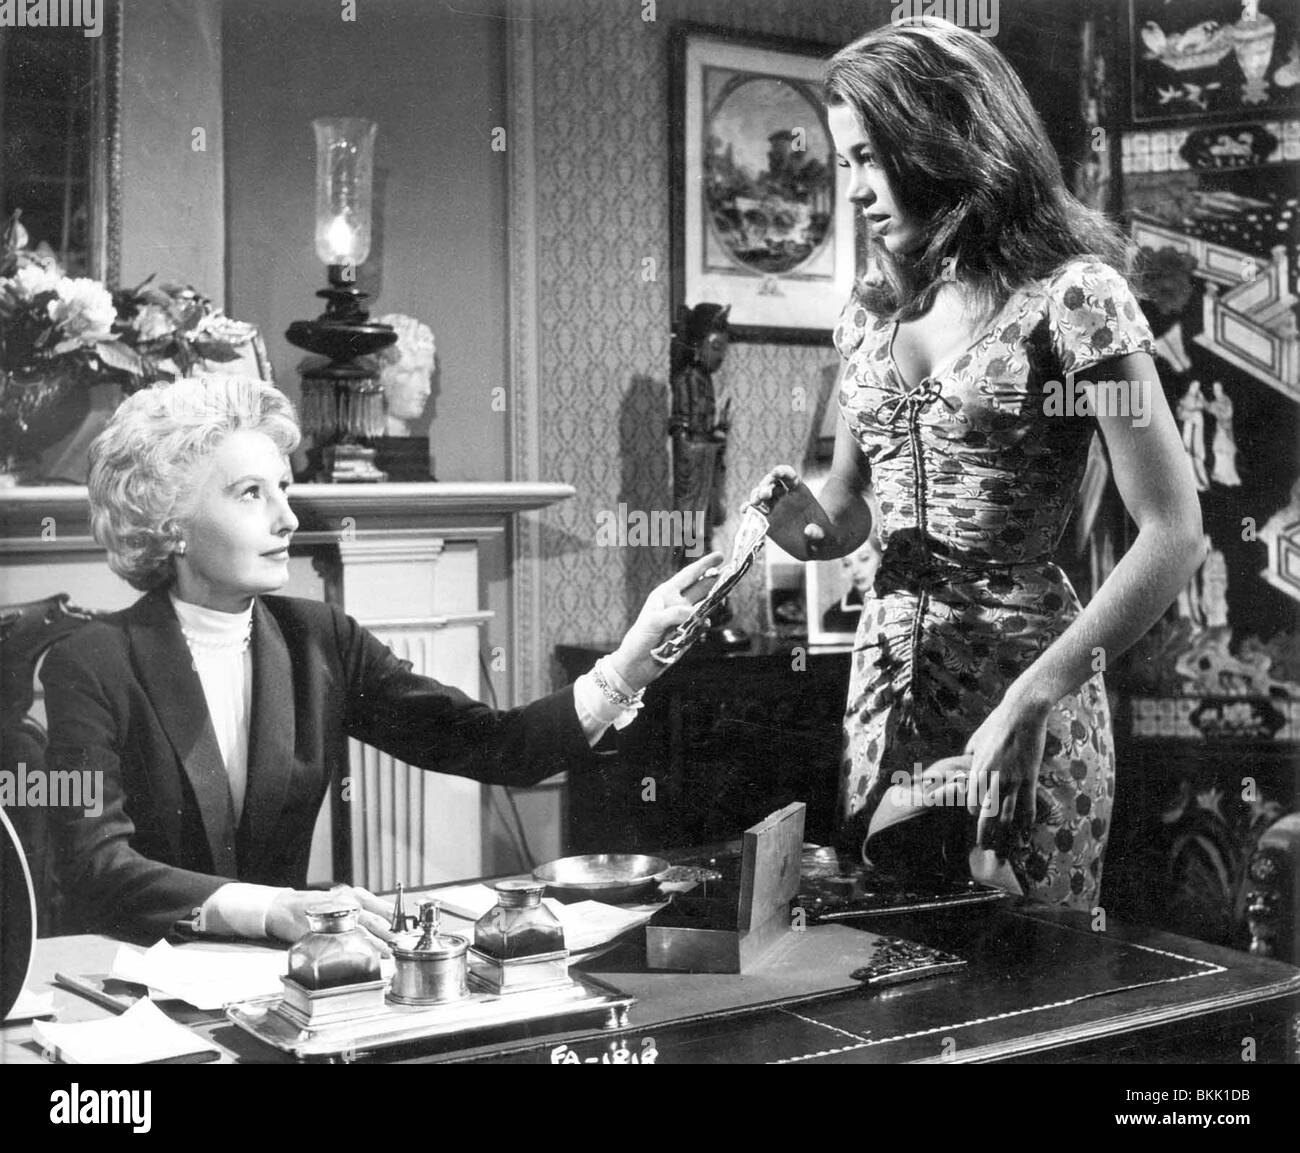 walk on the wild side 1962 barbara stanwyck jane fonda wsid 001 01 stock photo royalty free. Black Bedroom Furniture Sets. Home Design Ideas